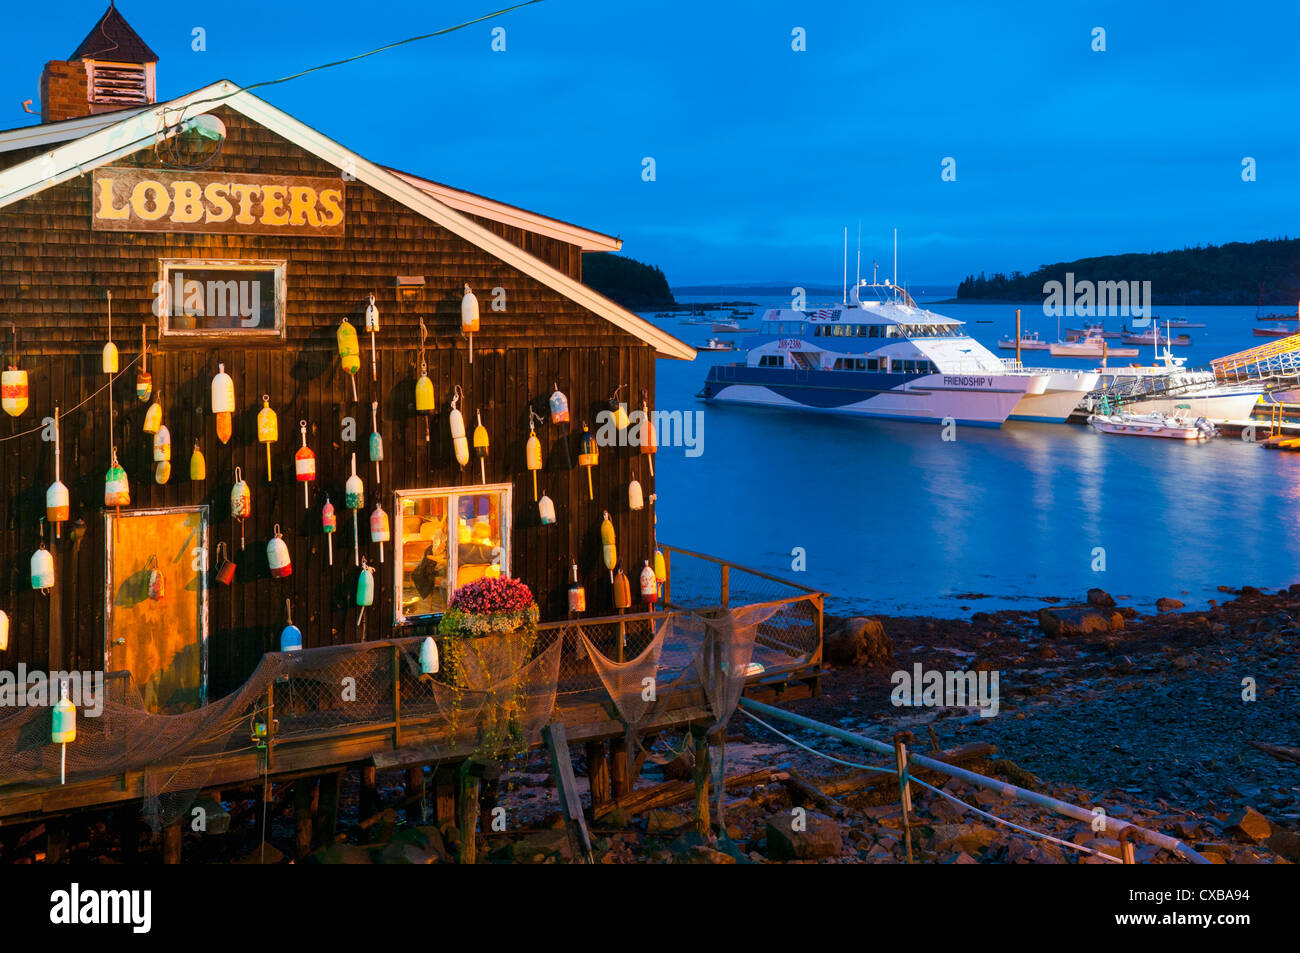 Lobster Restaurant Bar Harbor Mount Desert Island Maine